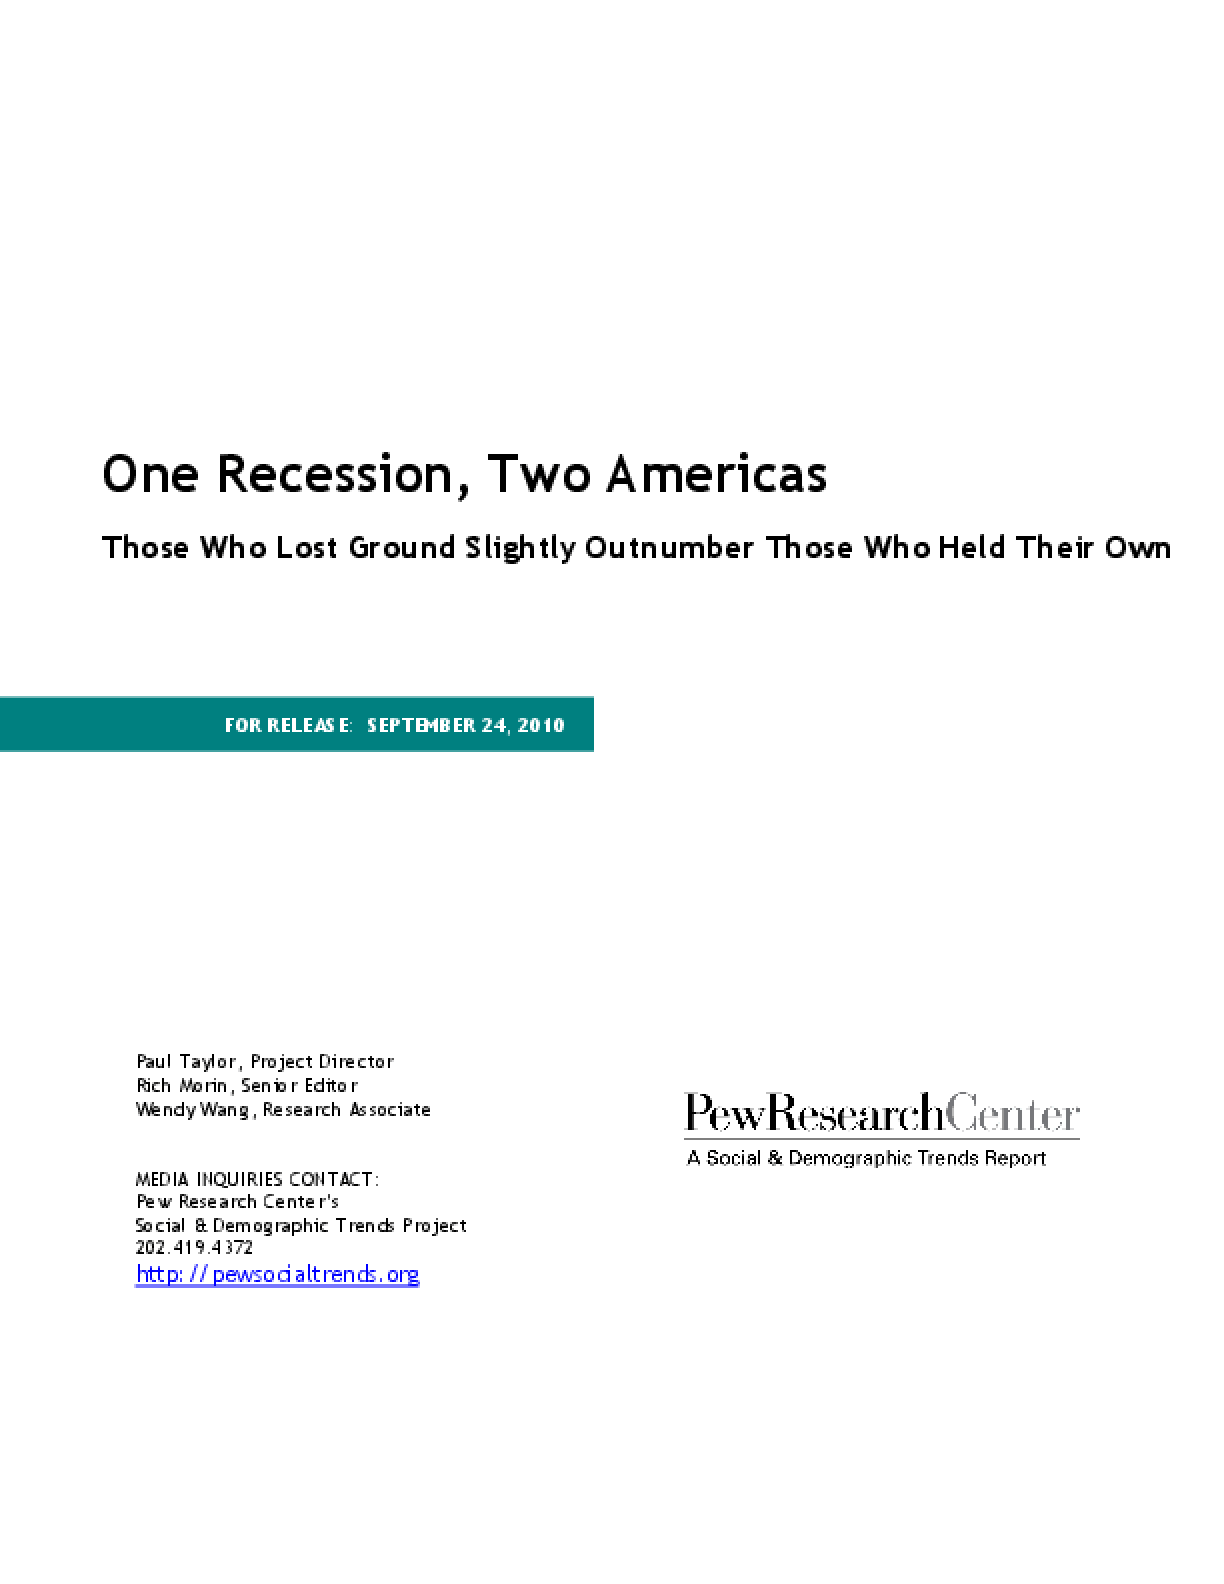 One Recession, Two Americas: Those Who Lost Ground Slightly Outnumber Those Who Held Their Own